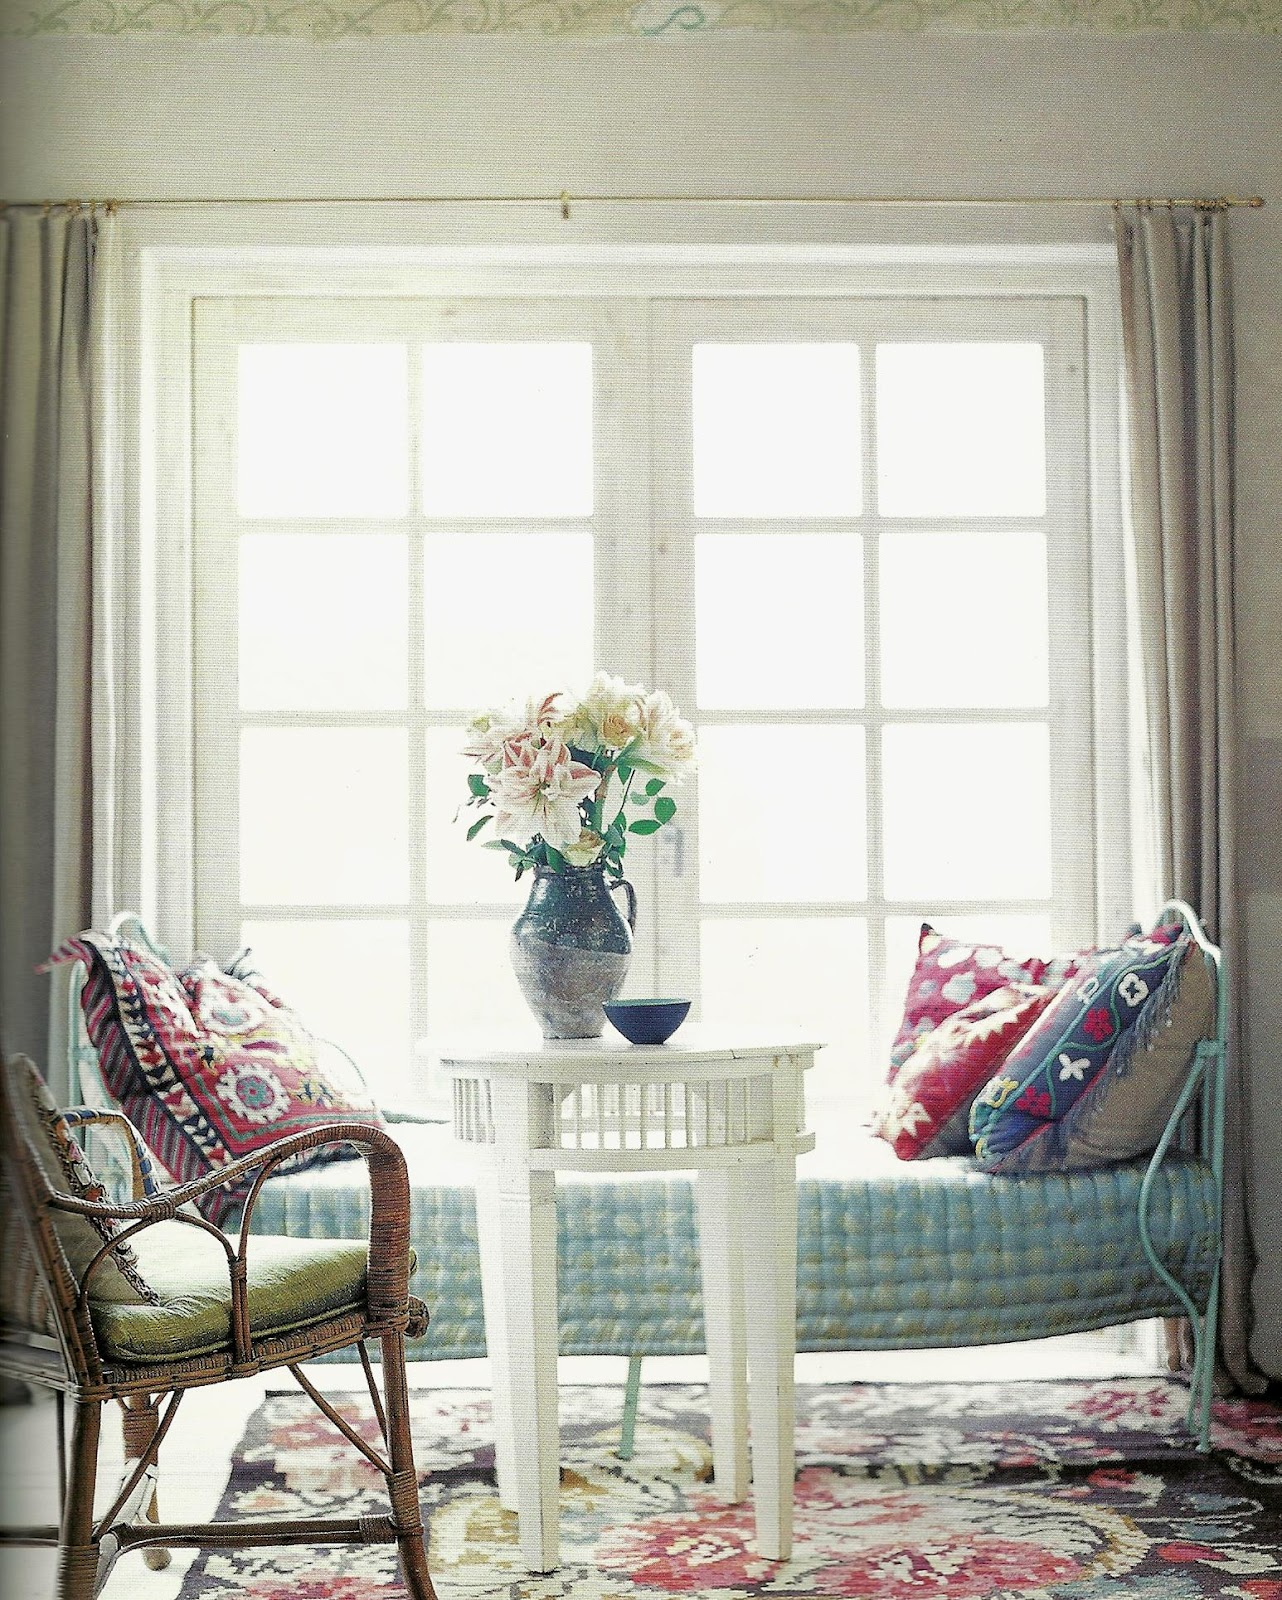 Boho Chic Furniture: Pallet For Home: Interiors: Boho Chic